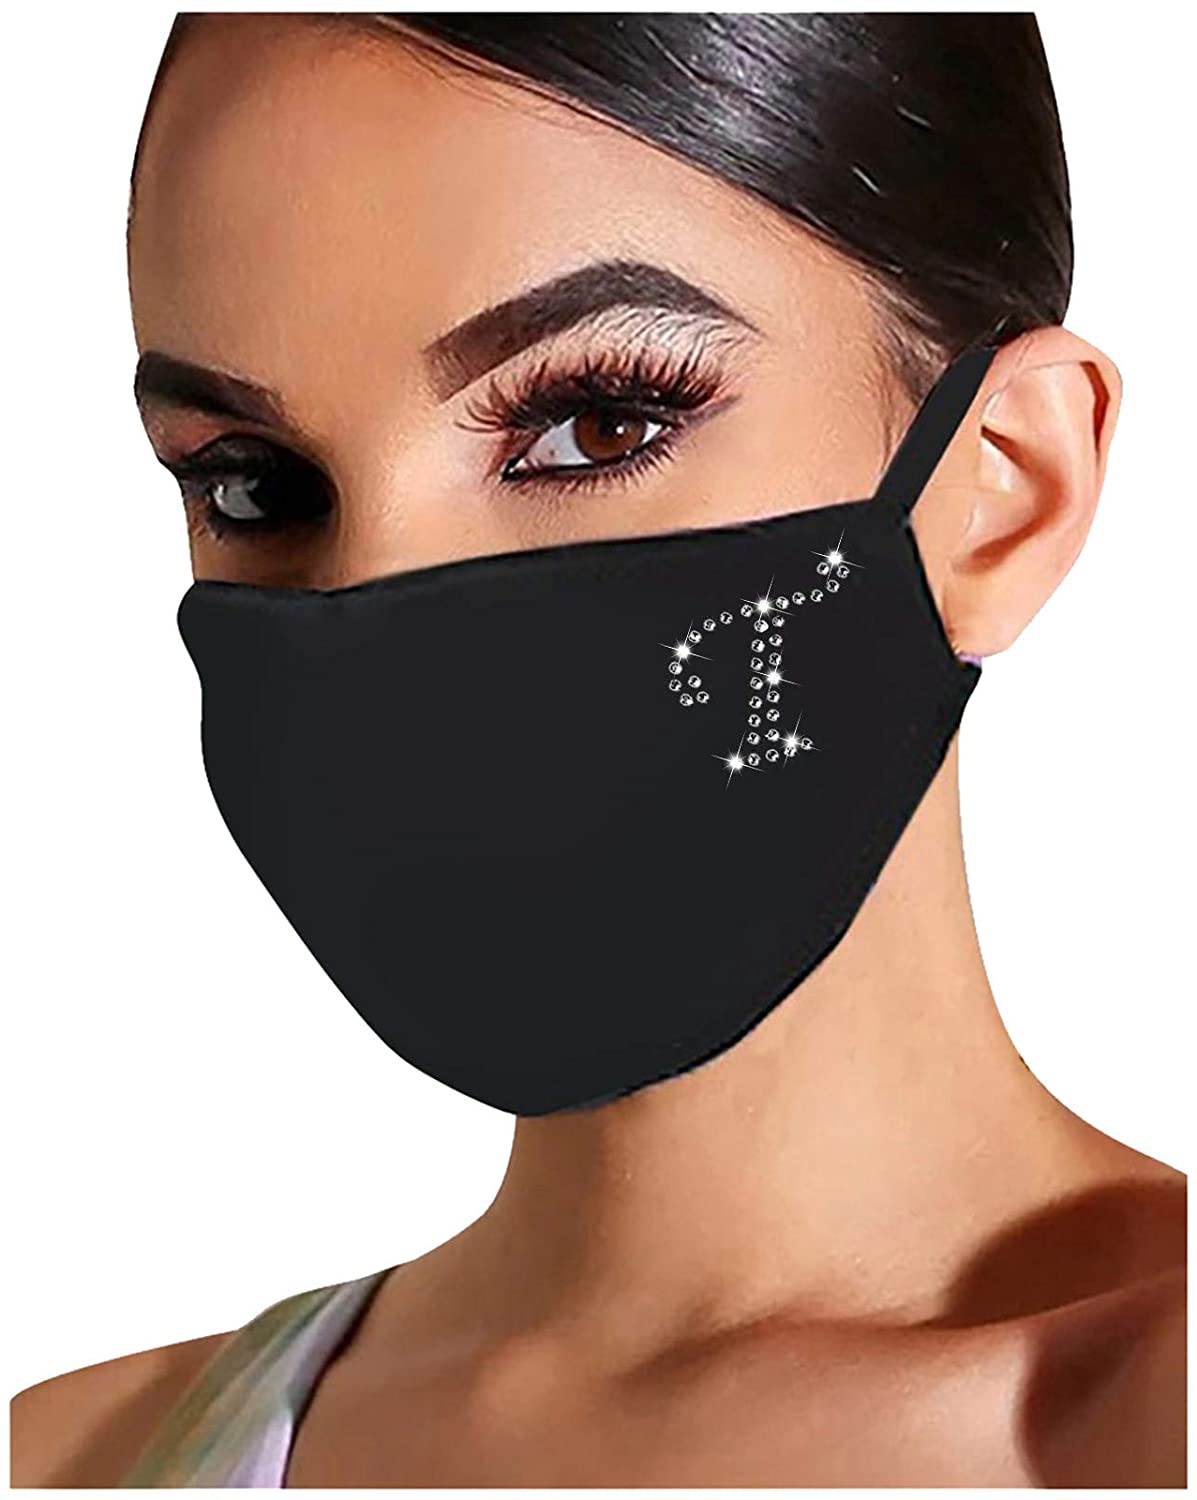 Selinora Sparkly Rhinestone Face_Mask Bling Crystal Masquerade Christmas Party Nightclub Mouth Covering for Women Girls